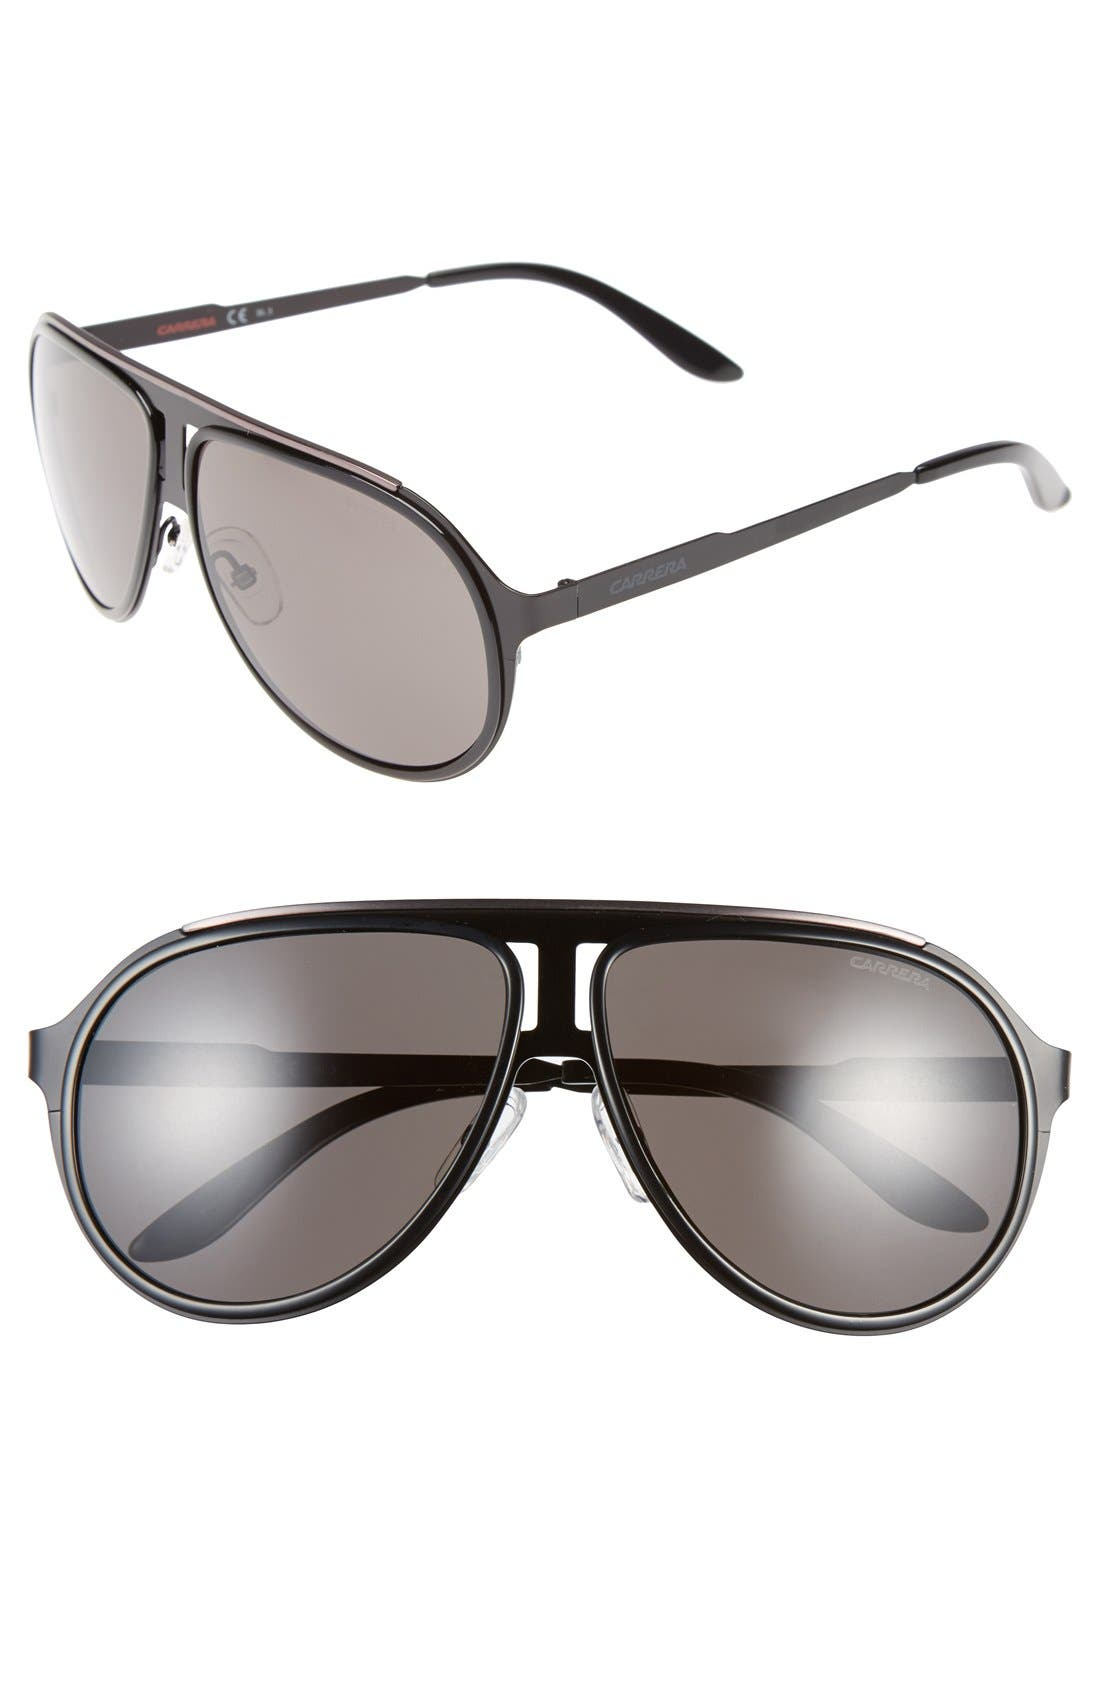 59mm Aviator Sunglasses,                             Main thumbnail 1, color,                             002